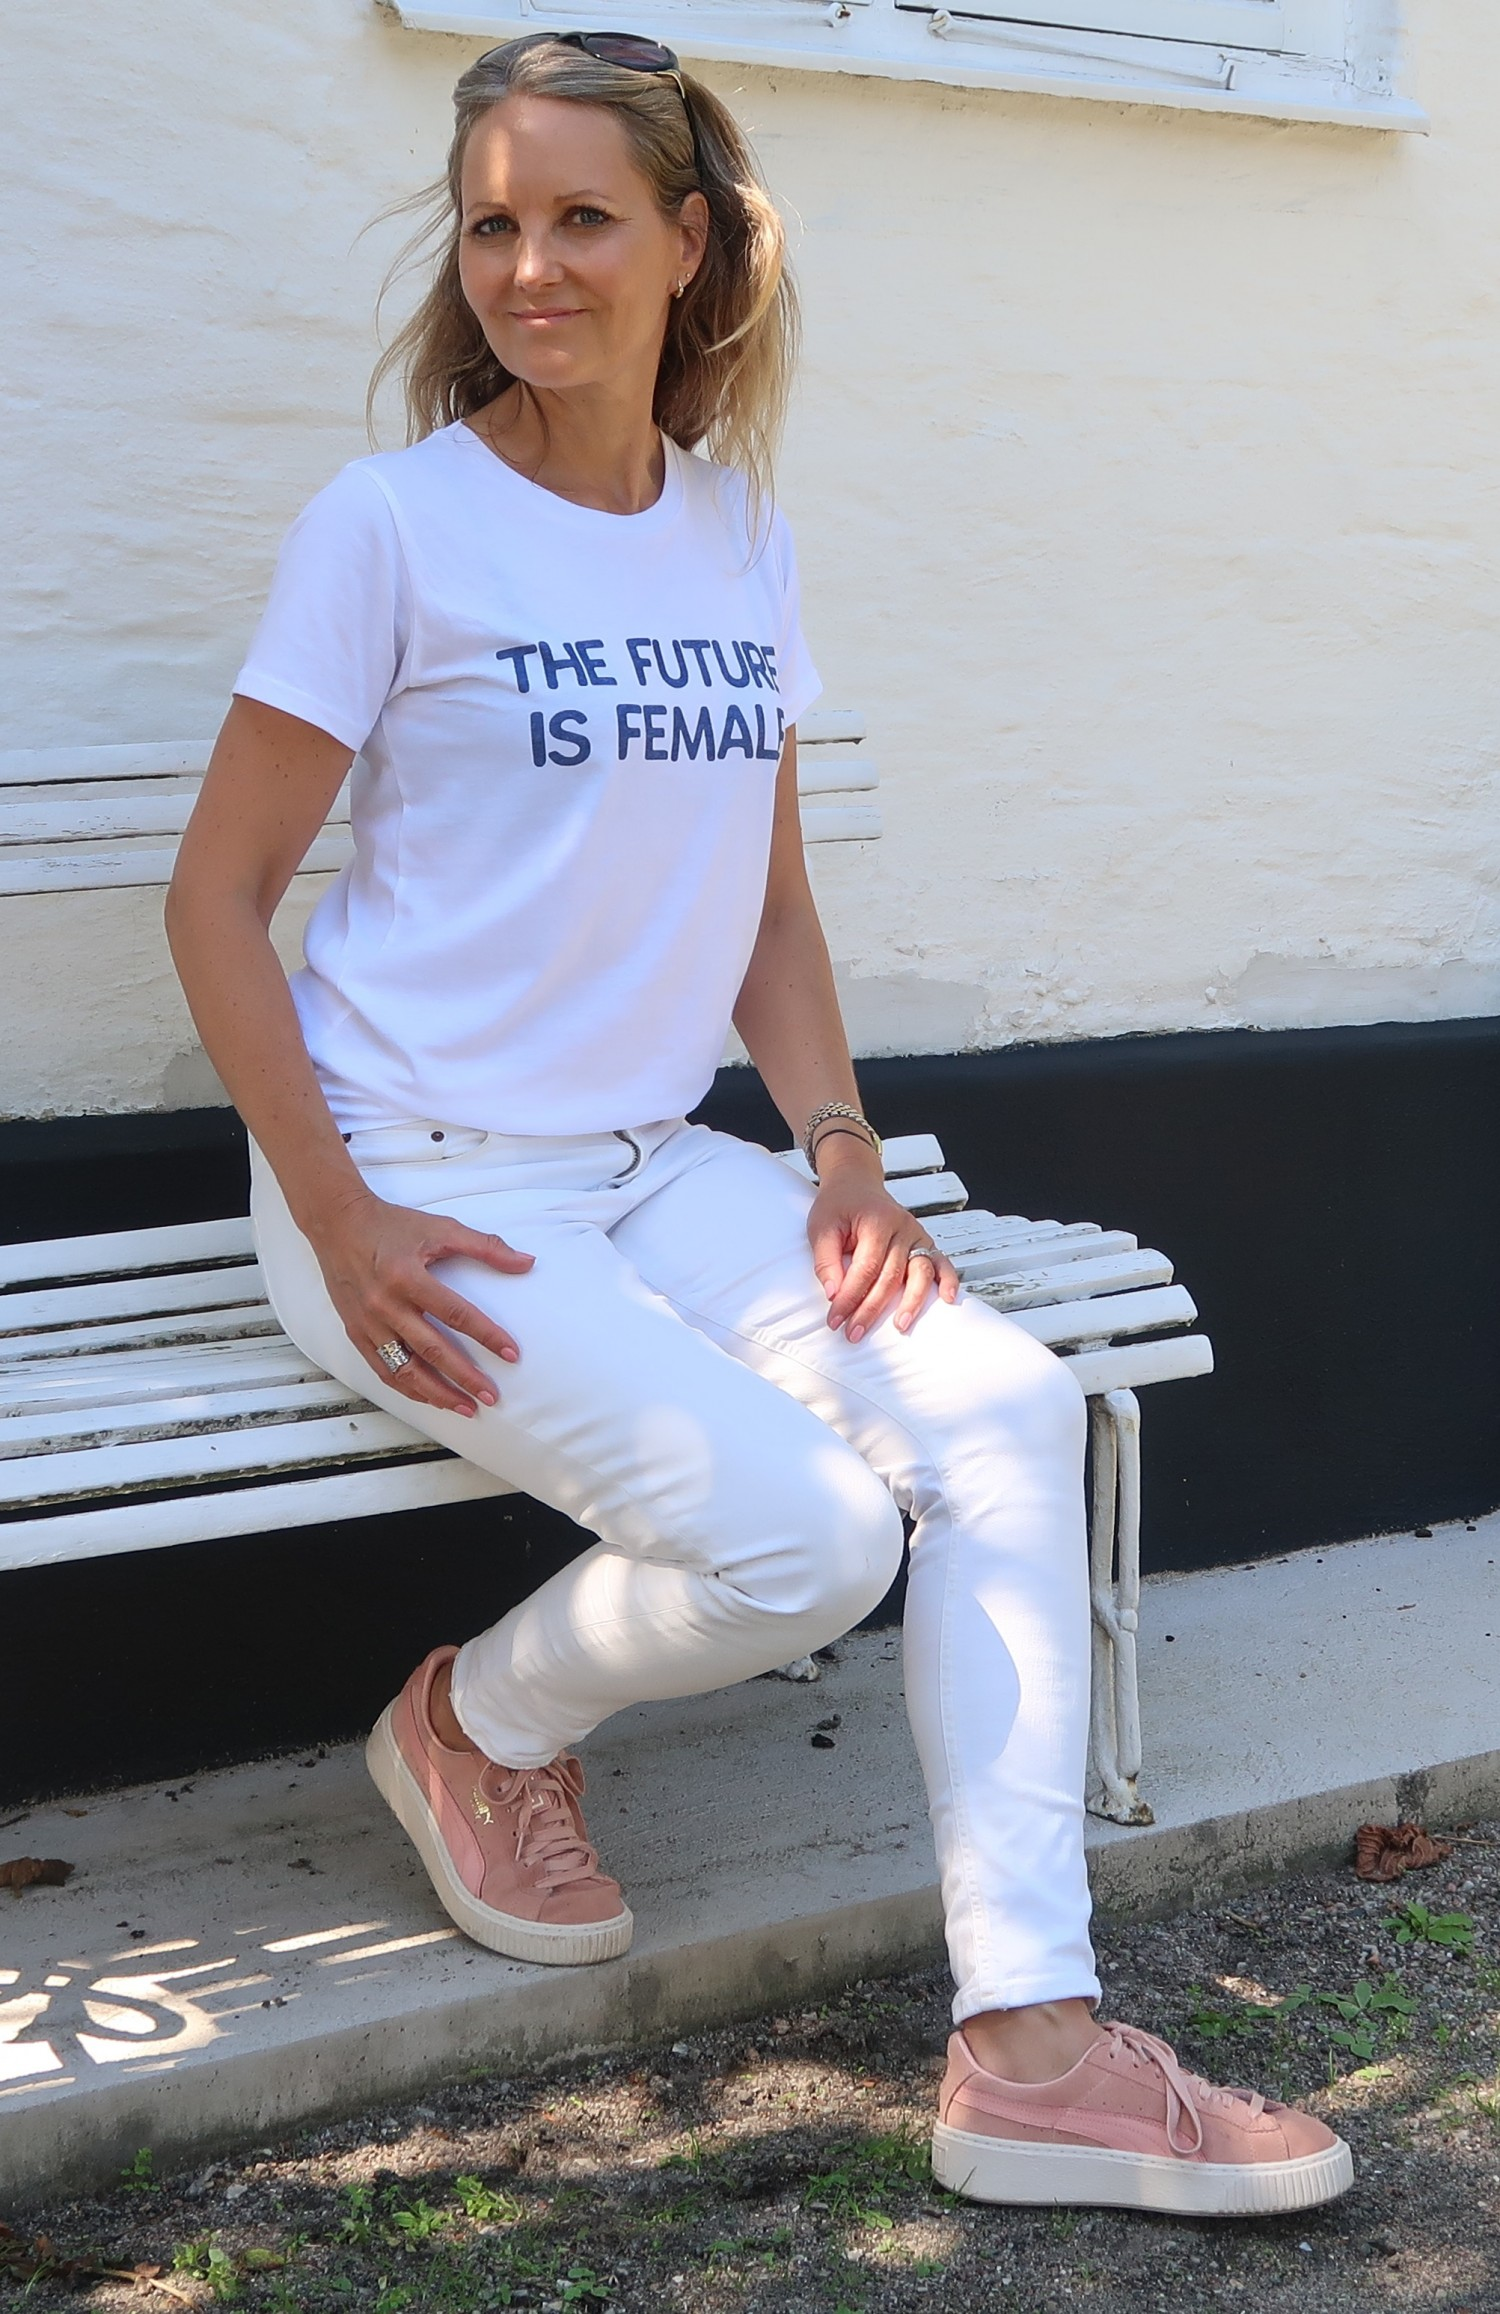 the-future-is-female-t-shirt